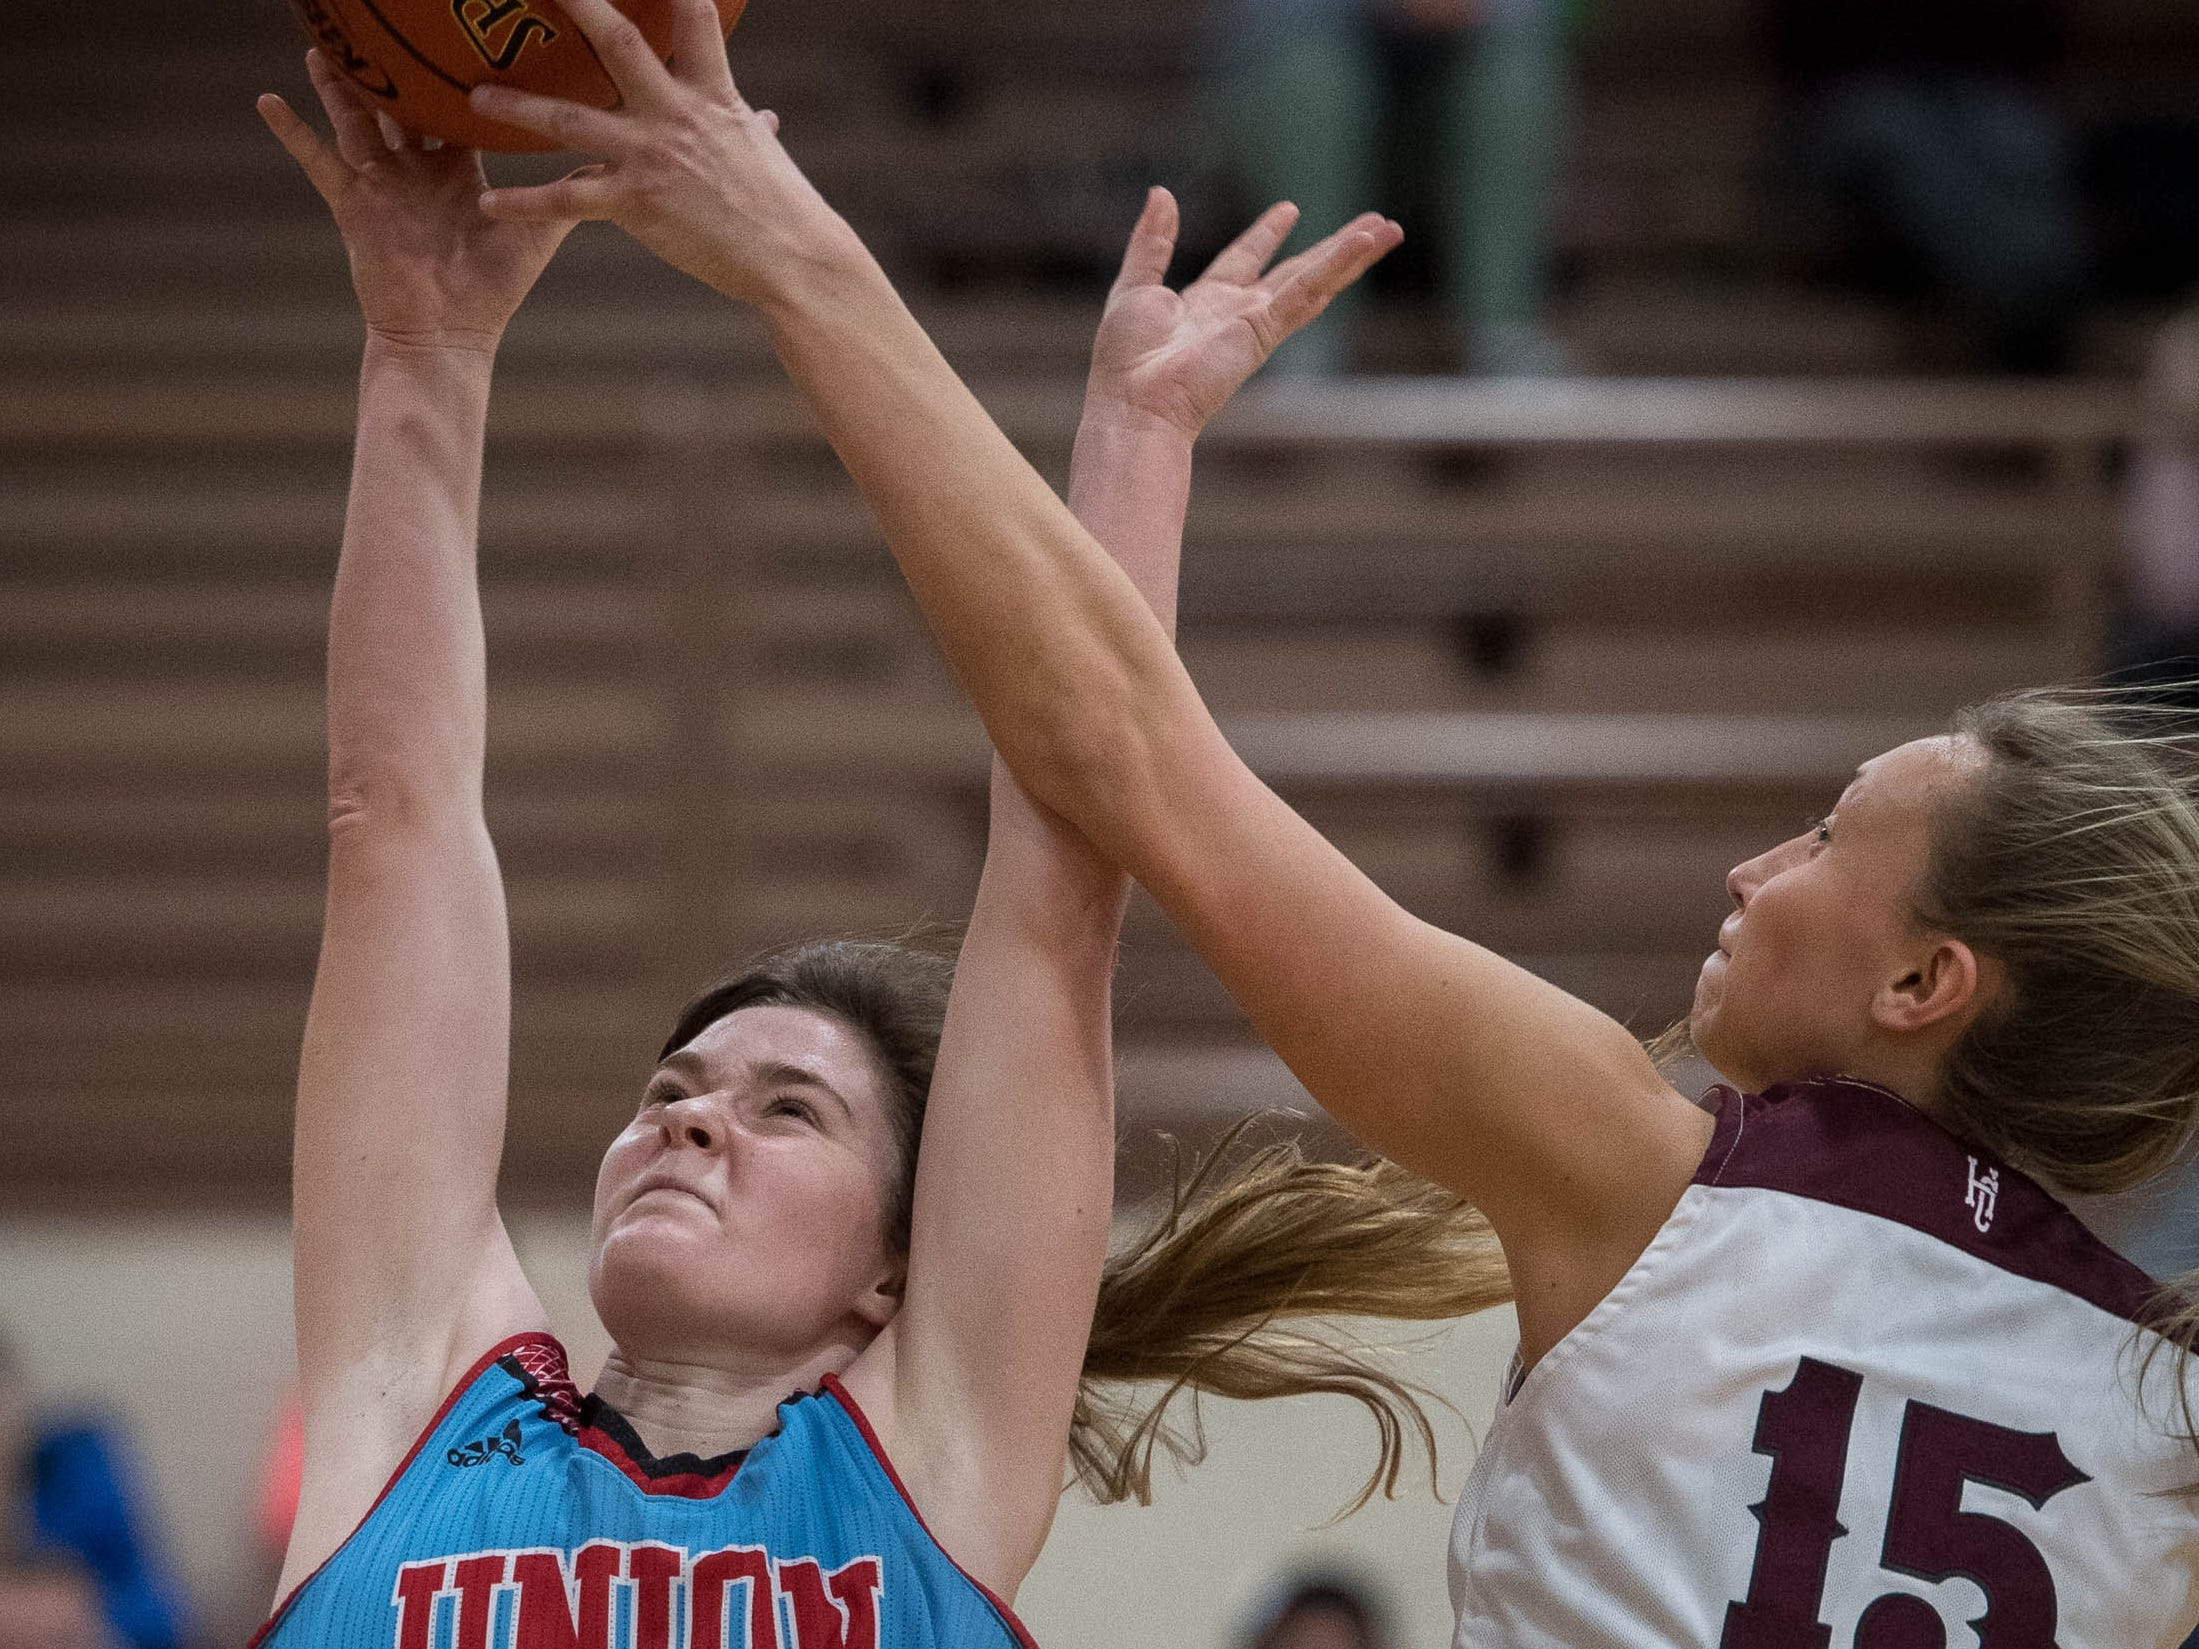 Henderson County's Alyssa Dickson (15) goes for a block as Jralee Roberson (22) shoots as district rivals Union County Bravettes play the Henderson County Lady Colonels at Colonel Gym in Henderson Tuesday, January 29, 2019.